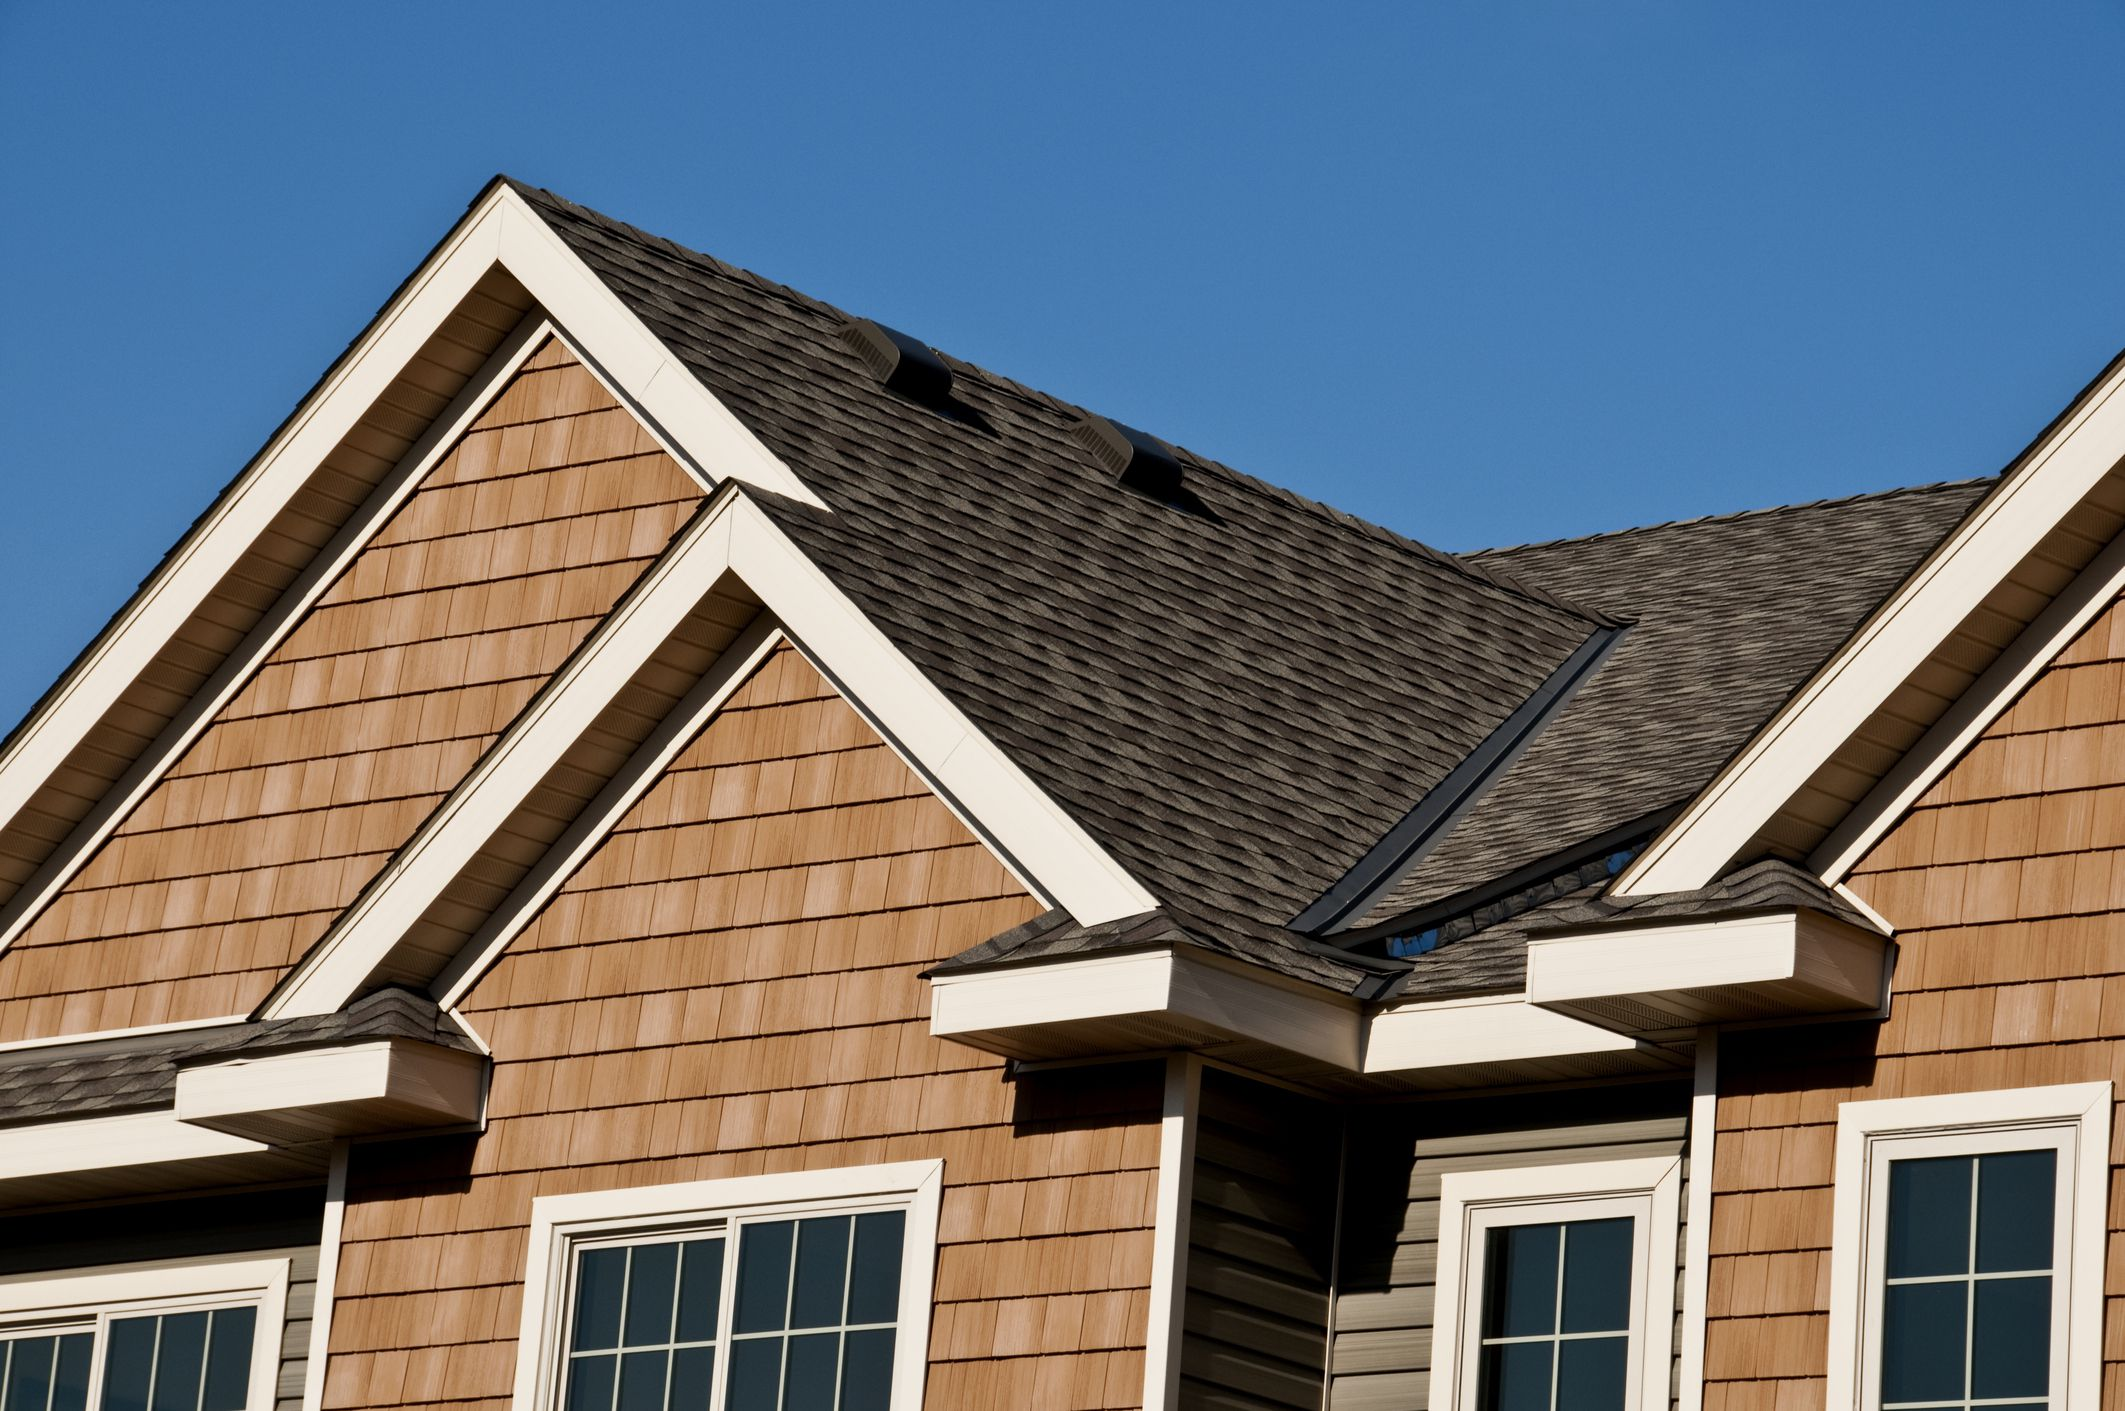 Quality roofing job begins before the shingles go on home remodeling - Create Natural Ventilation In Your Home By Installing A Ridge Vent